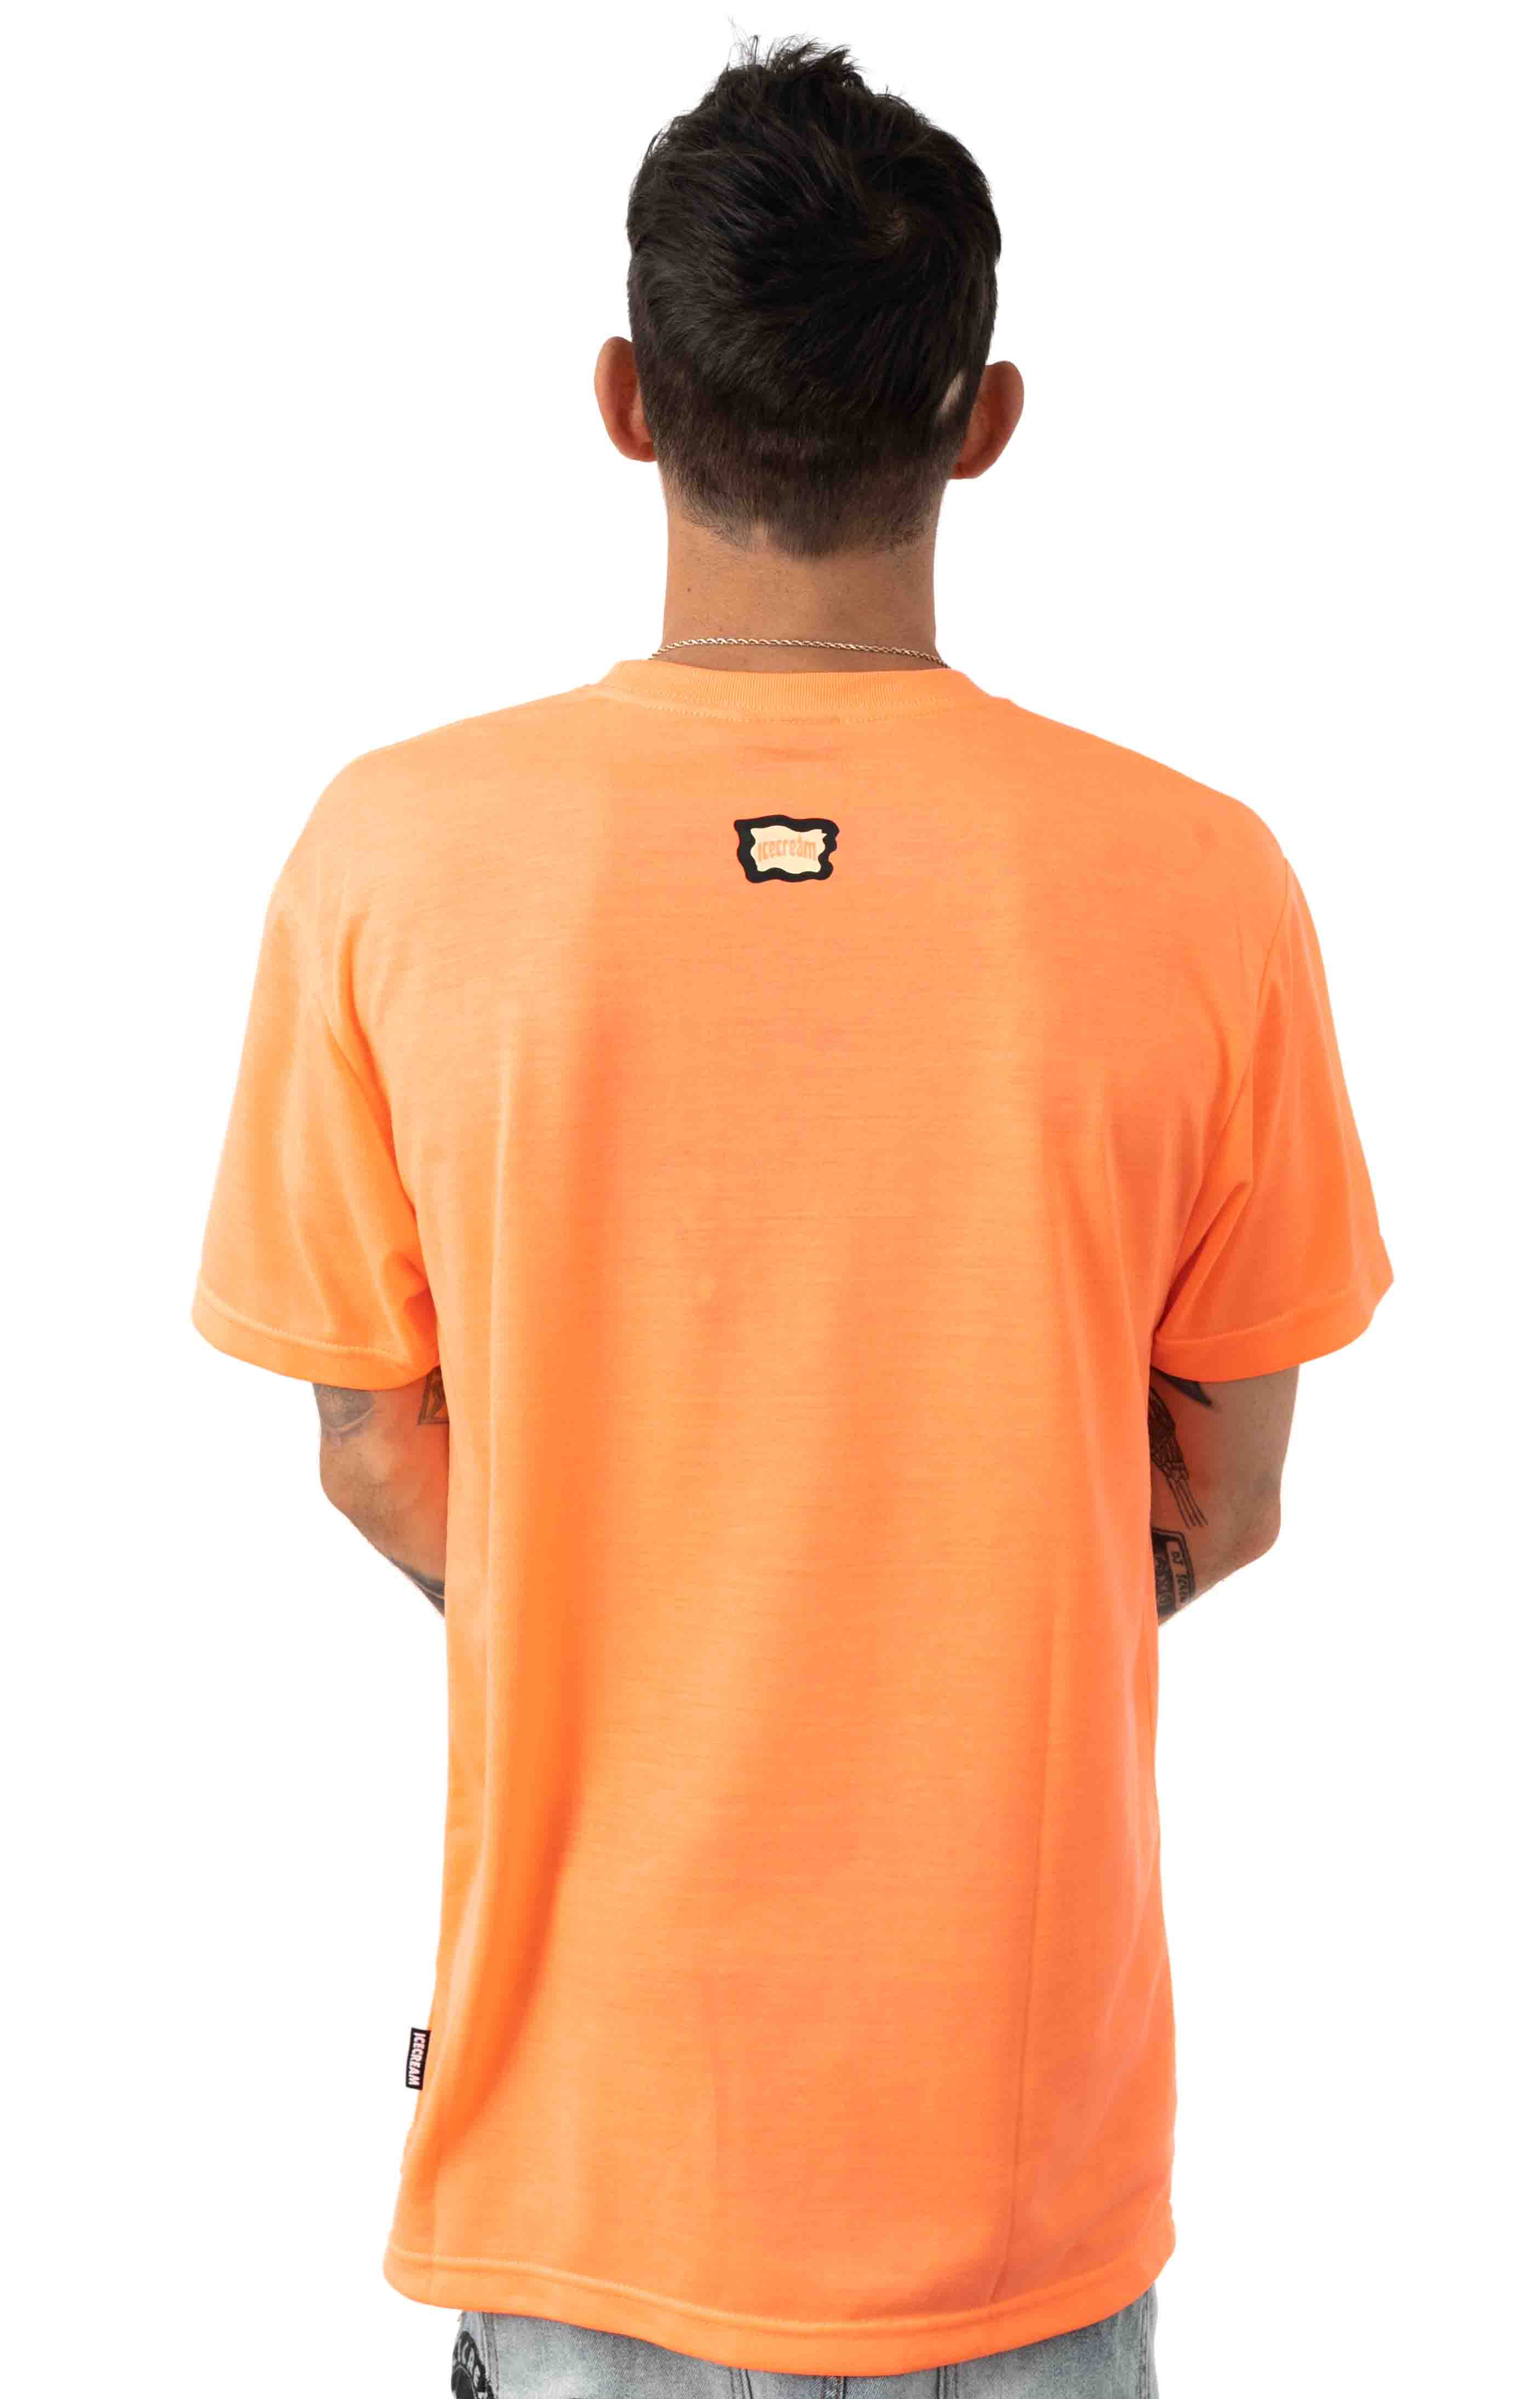 Cup T-Shirt - Neon Coral  3